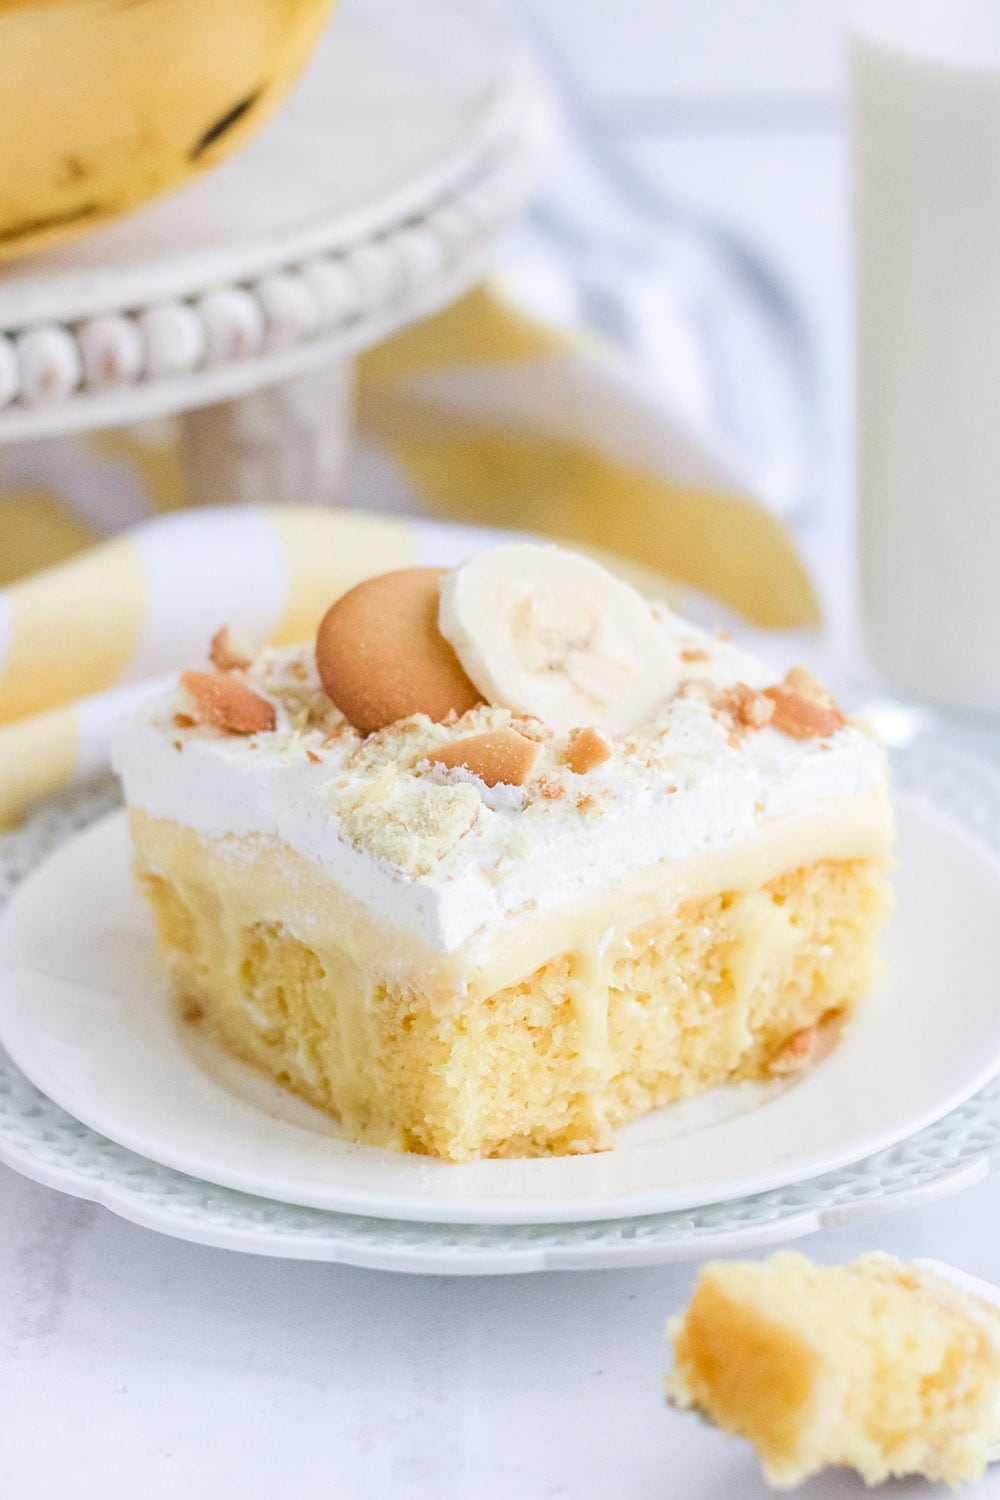 Banana pudding cake topped with whipped cream and cookies.